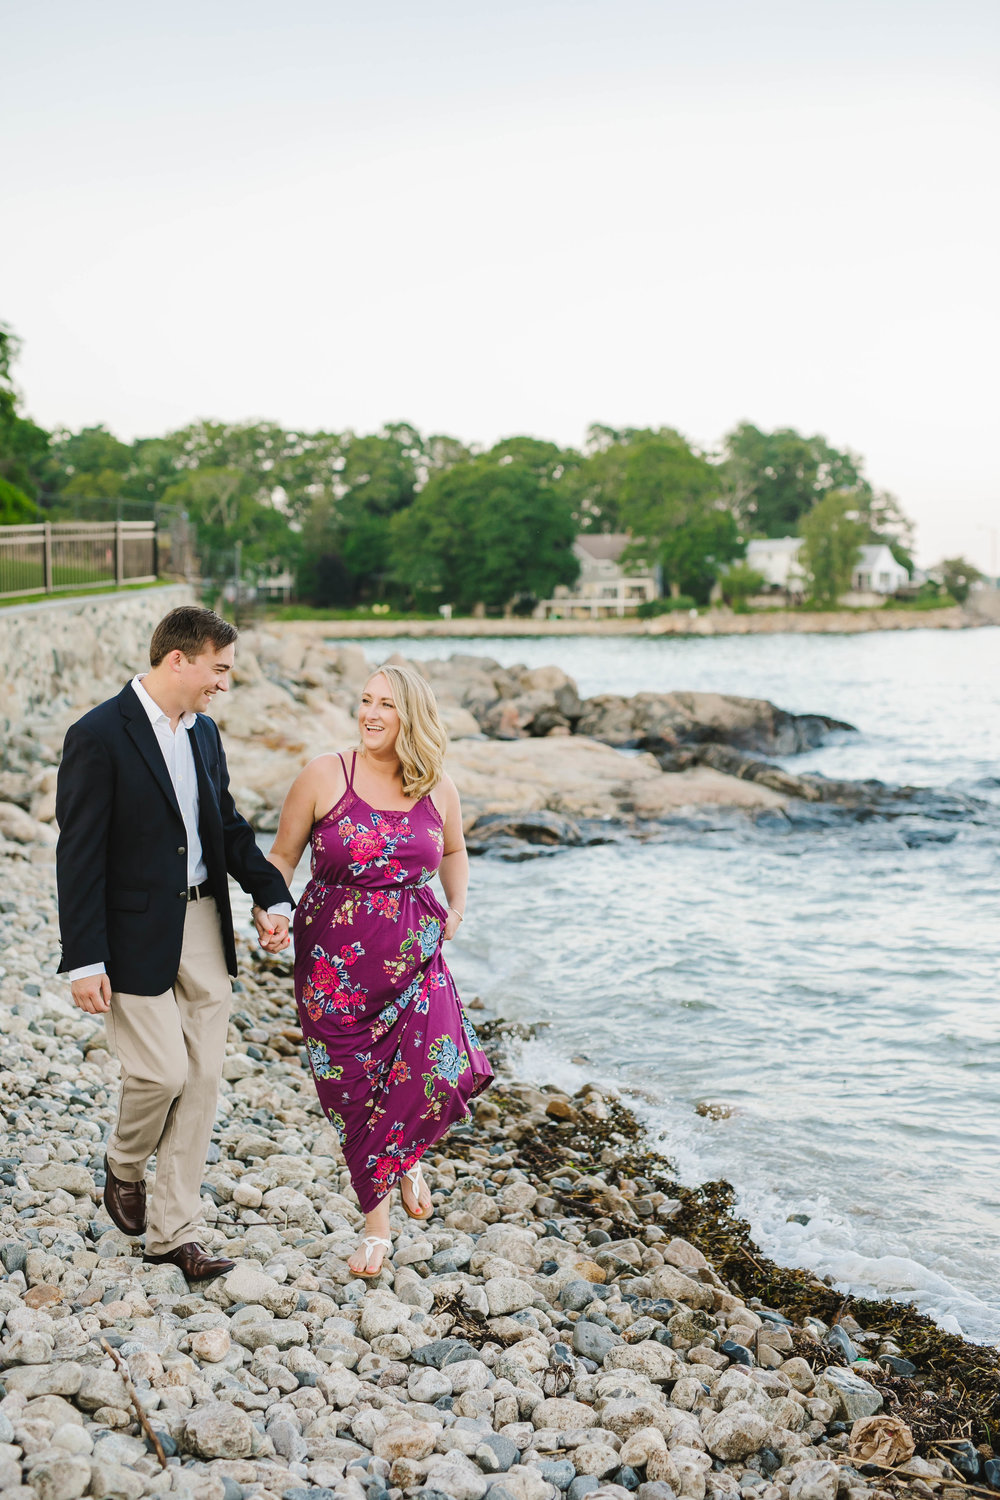 Beverly Lynch Park Rose Garden Engagement Session - Emily Tebbetts Photography-58.jpg